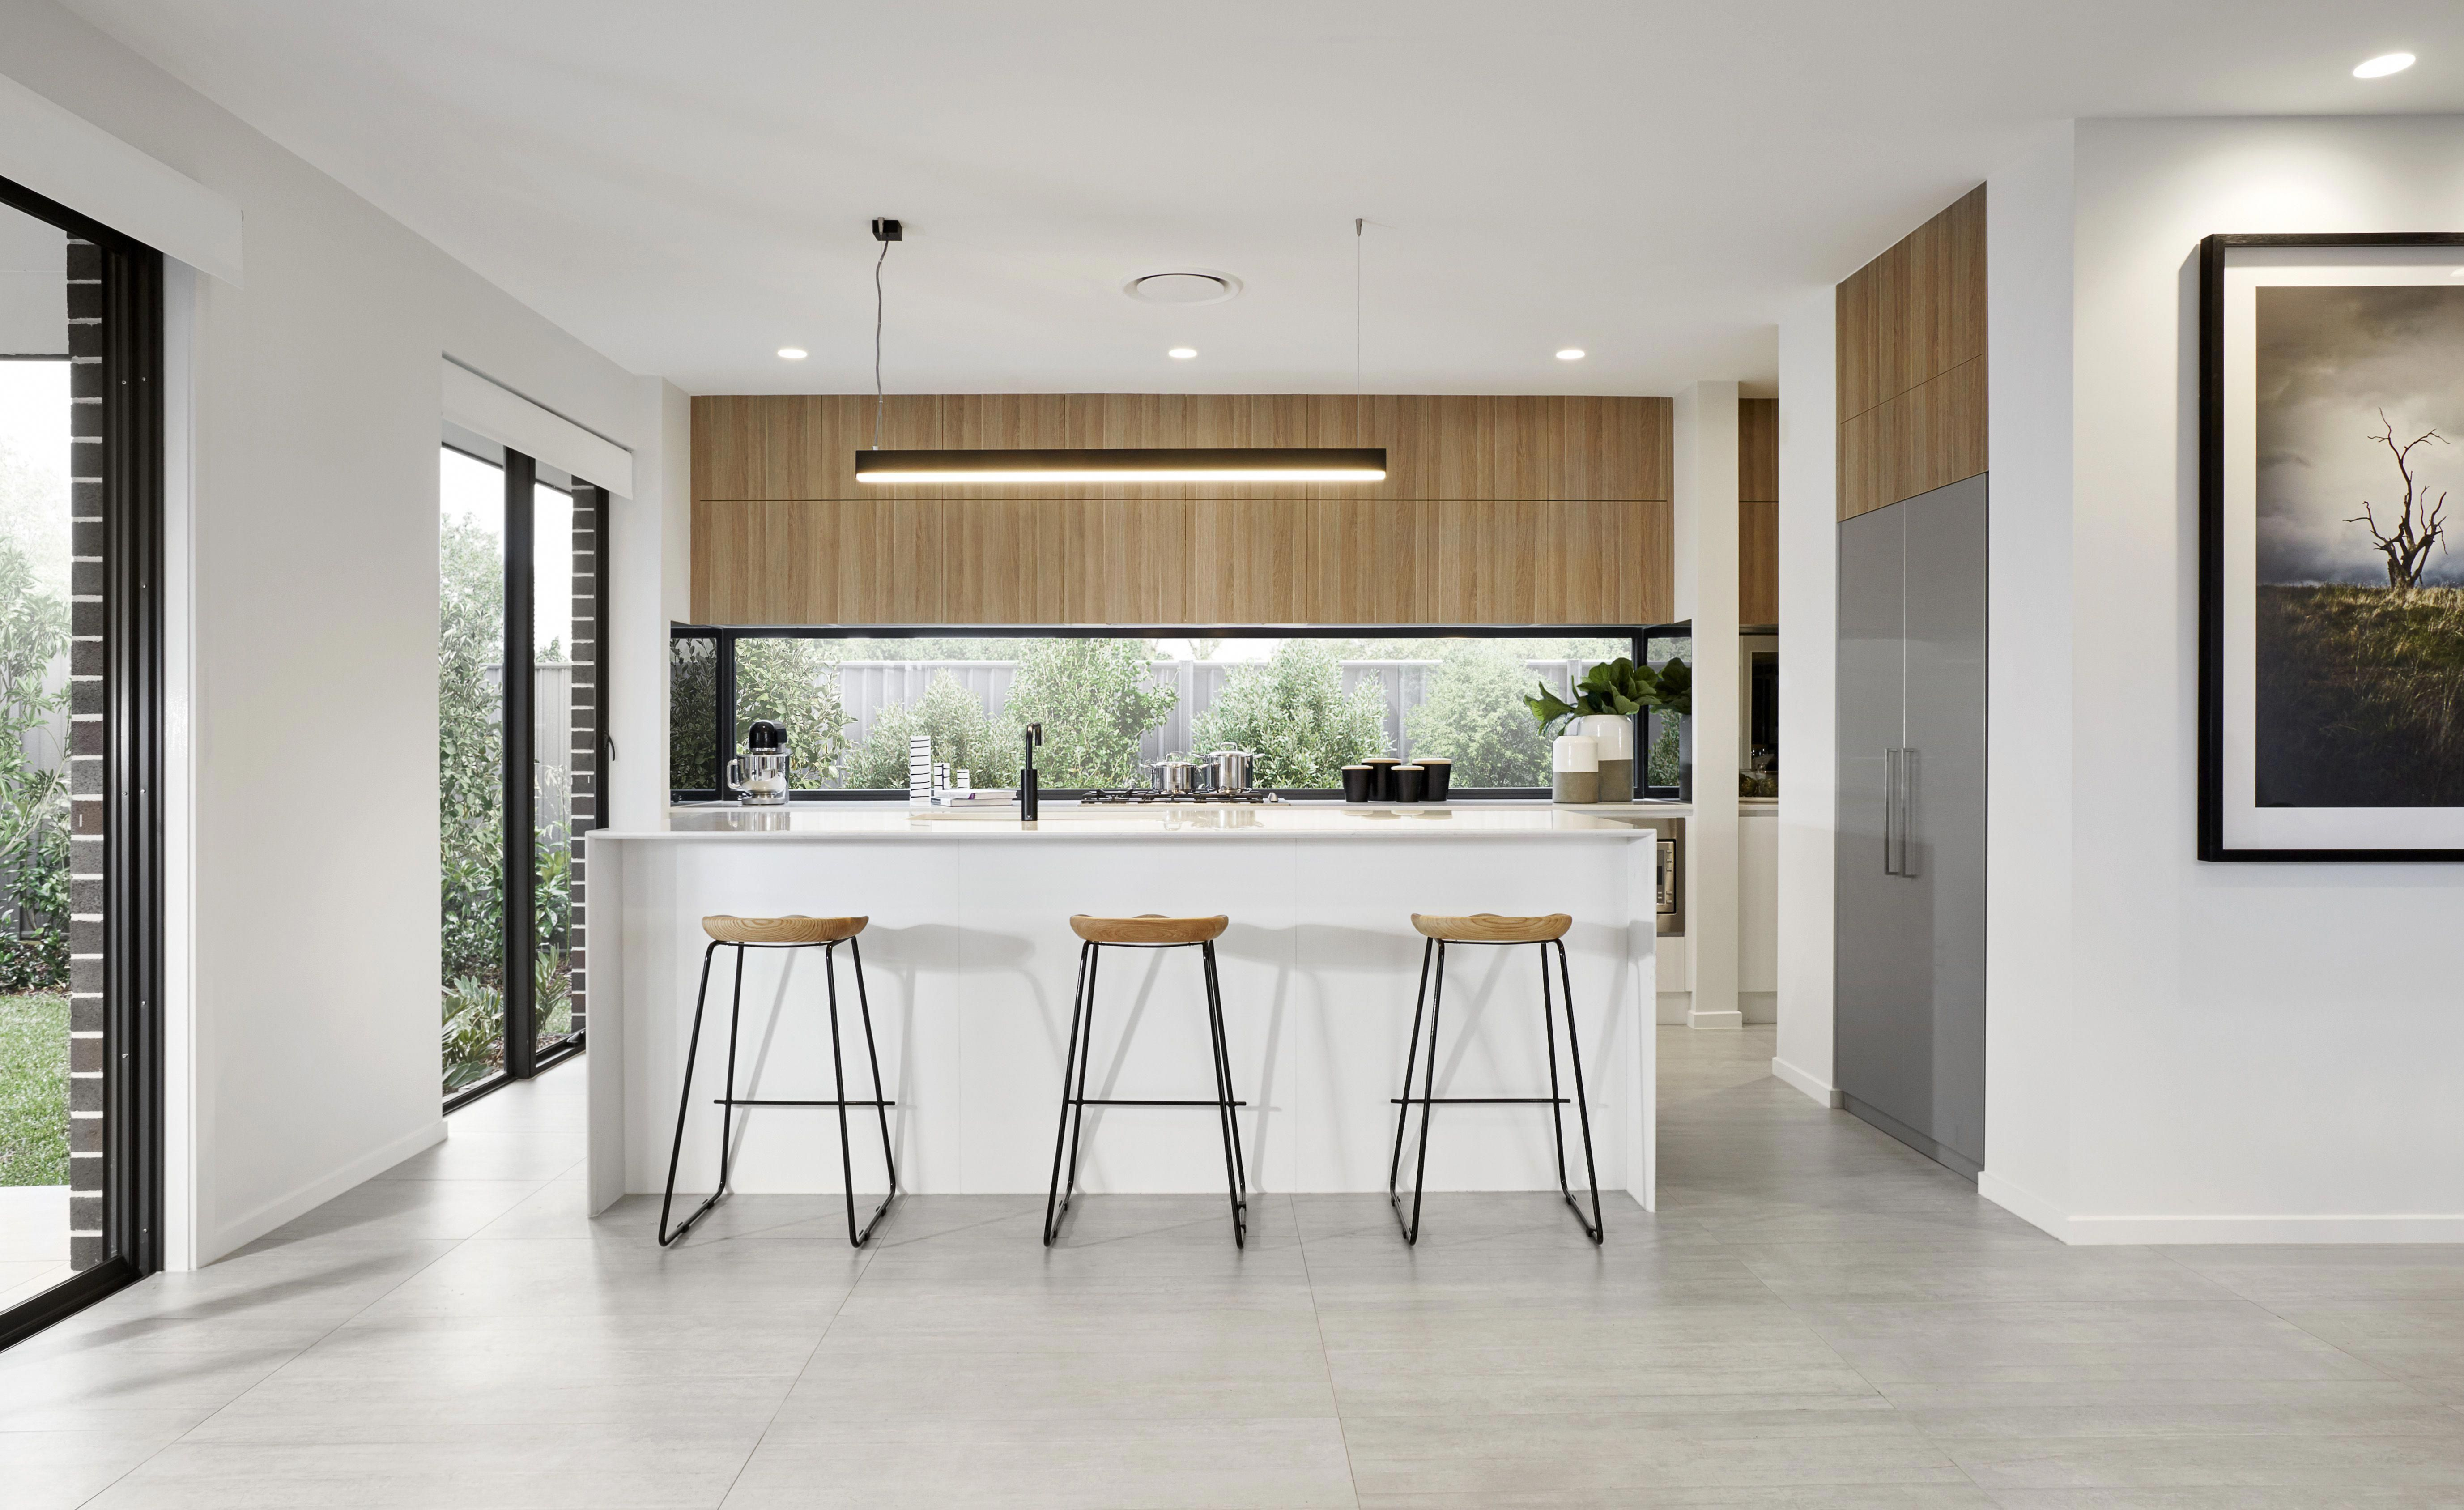 Harrington Kitchen #Tuscankitchens | Tuscan kitchen, Tuscan kitchen design, Modern kitchen design